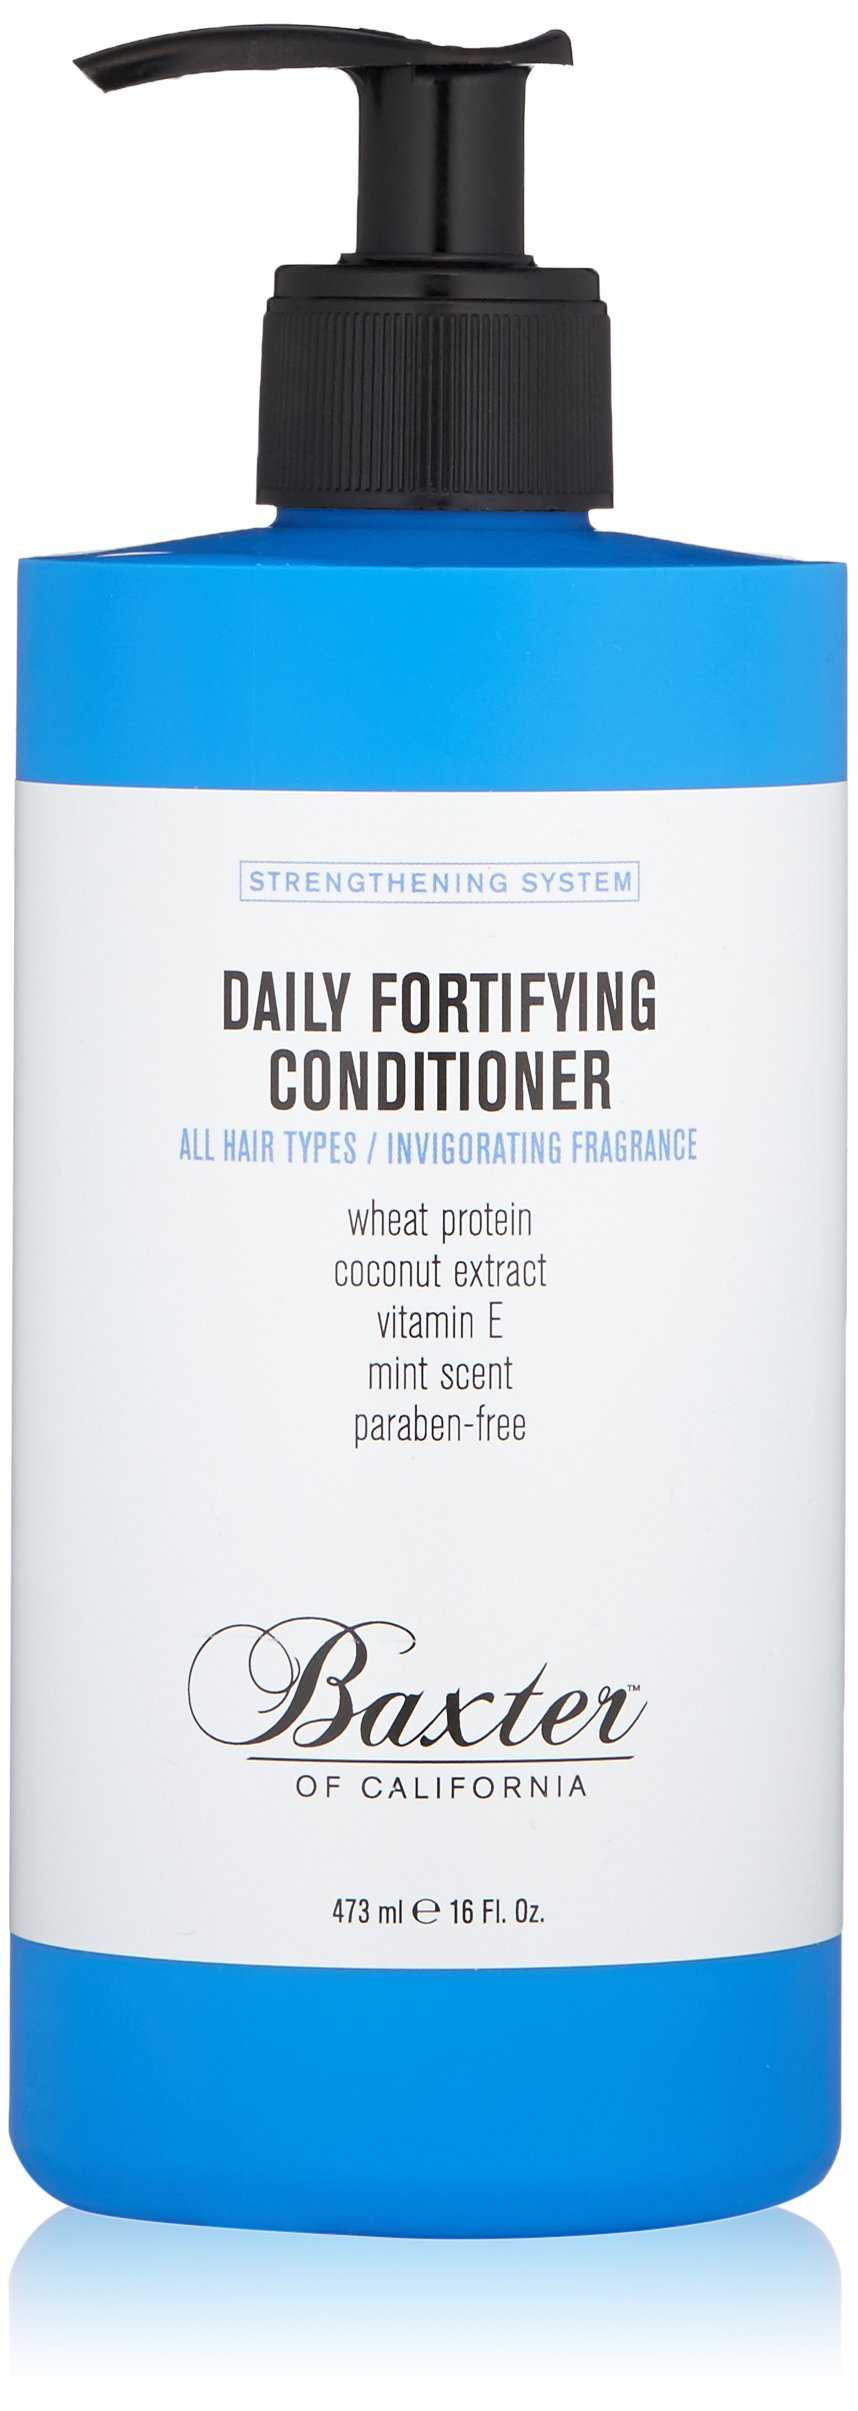 Baxter of California Daily Fortifying Conditioner for Men |  All Hair Types | Moisturizes and Detangles | Fresh Mint Scent | 16 oz.